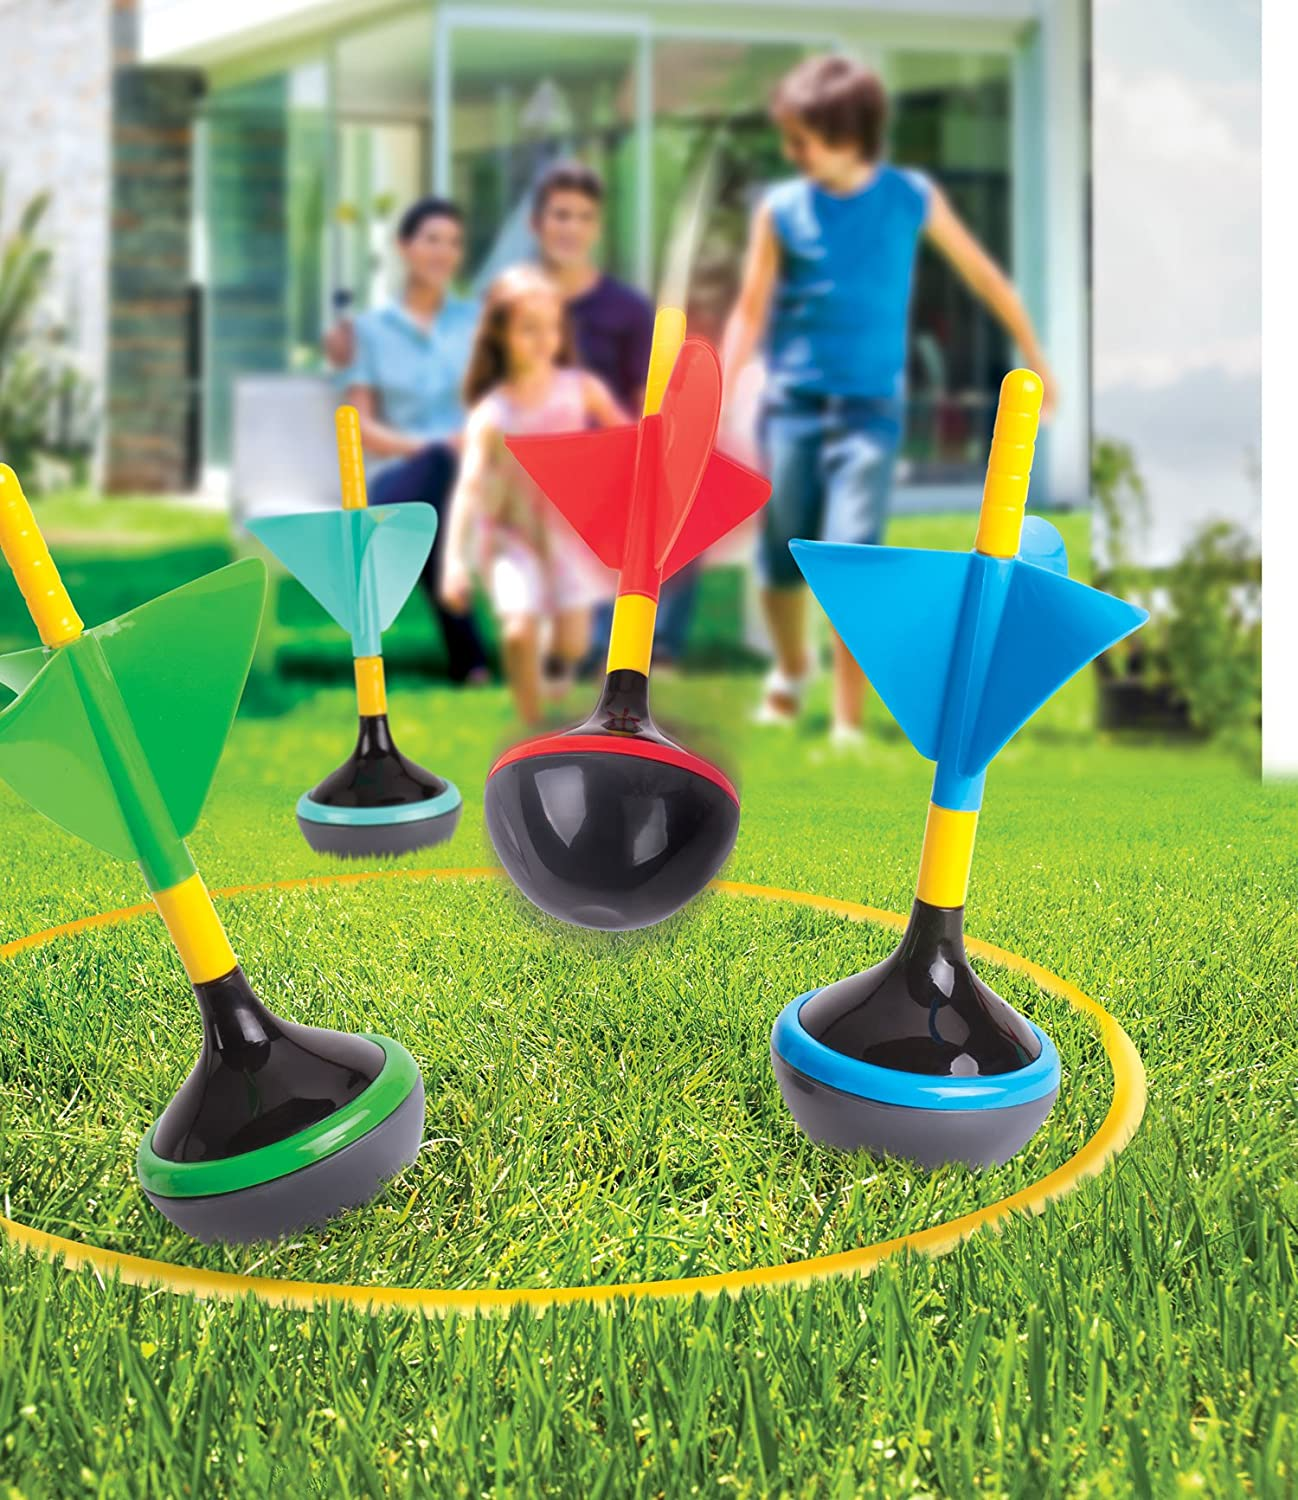 Amazon Outdoor Backyard Lawn Darts Game for Kids Children